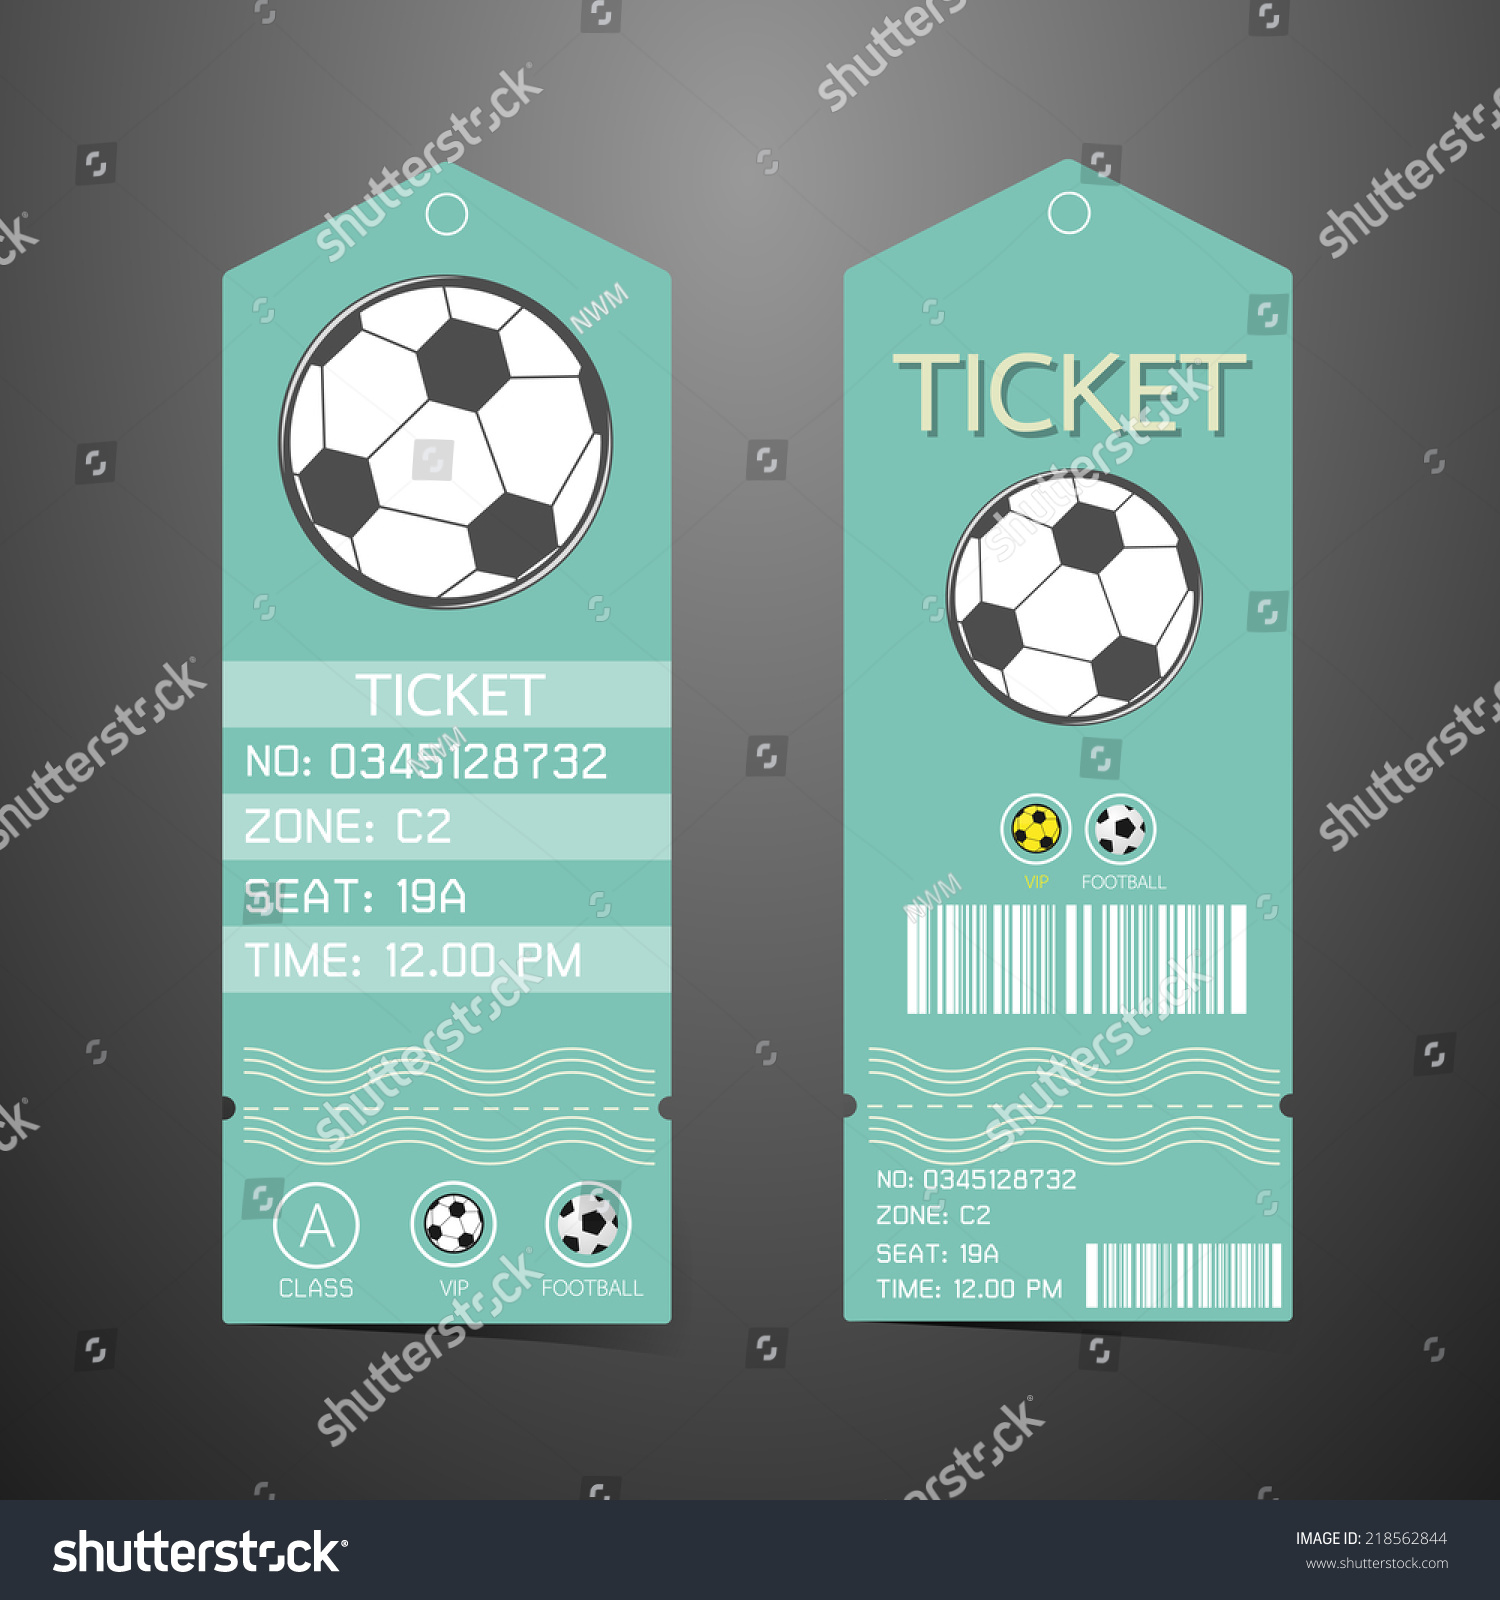 design ticket template design ticket template